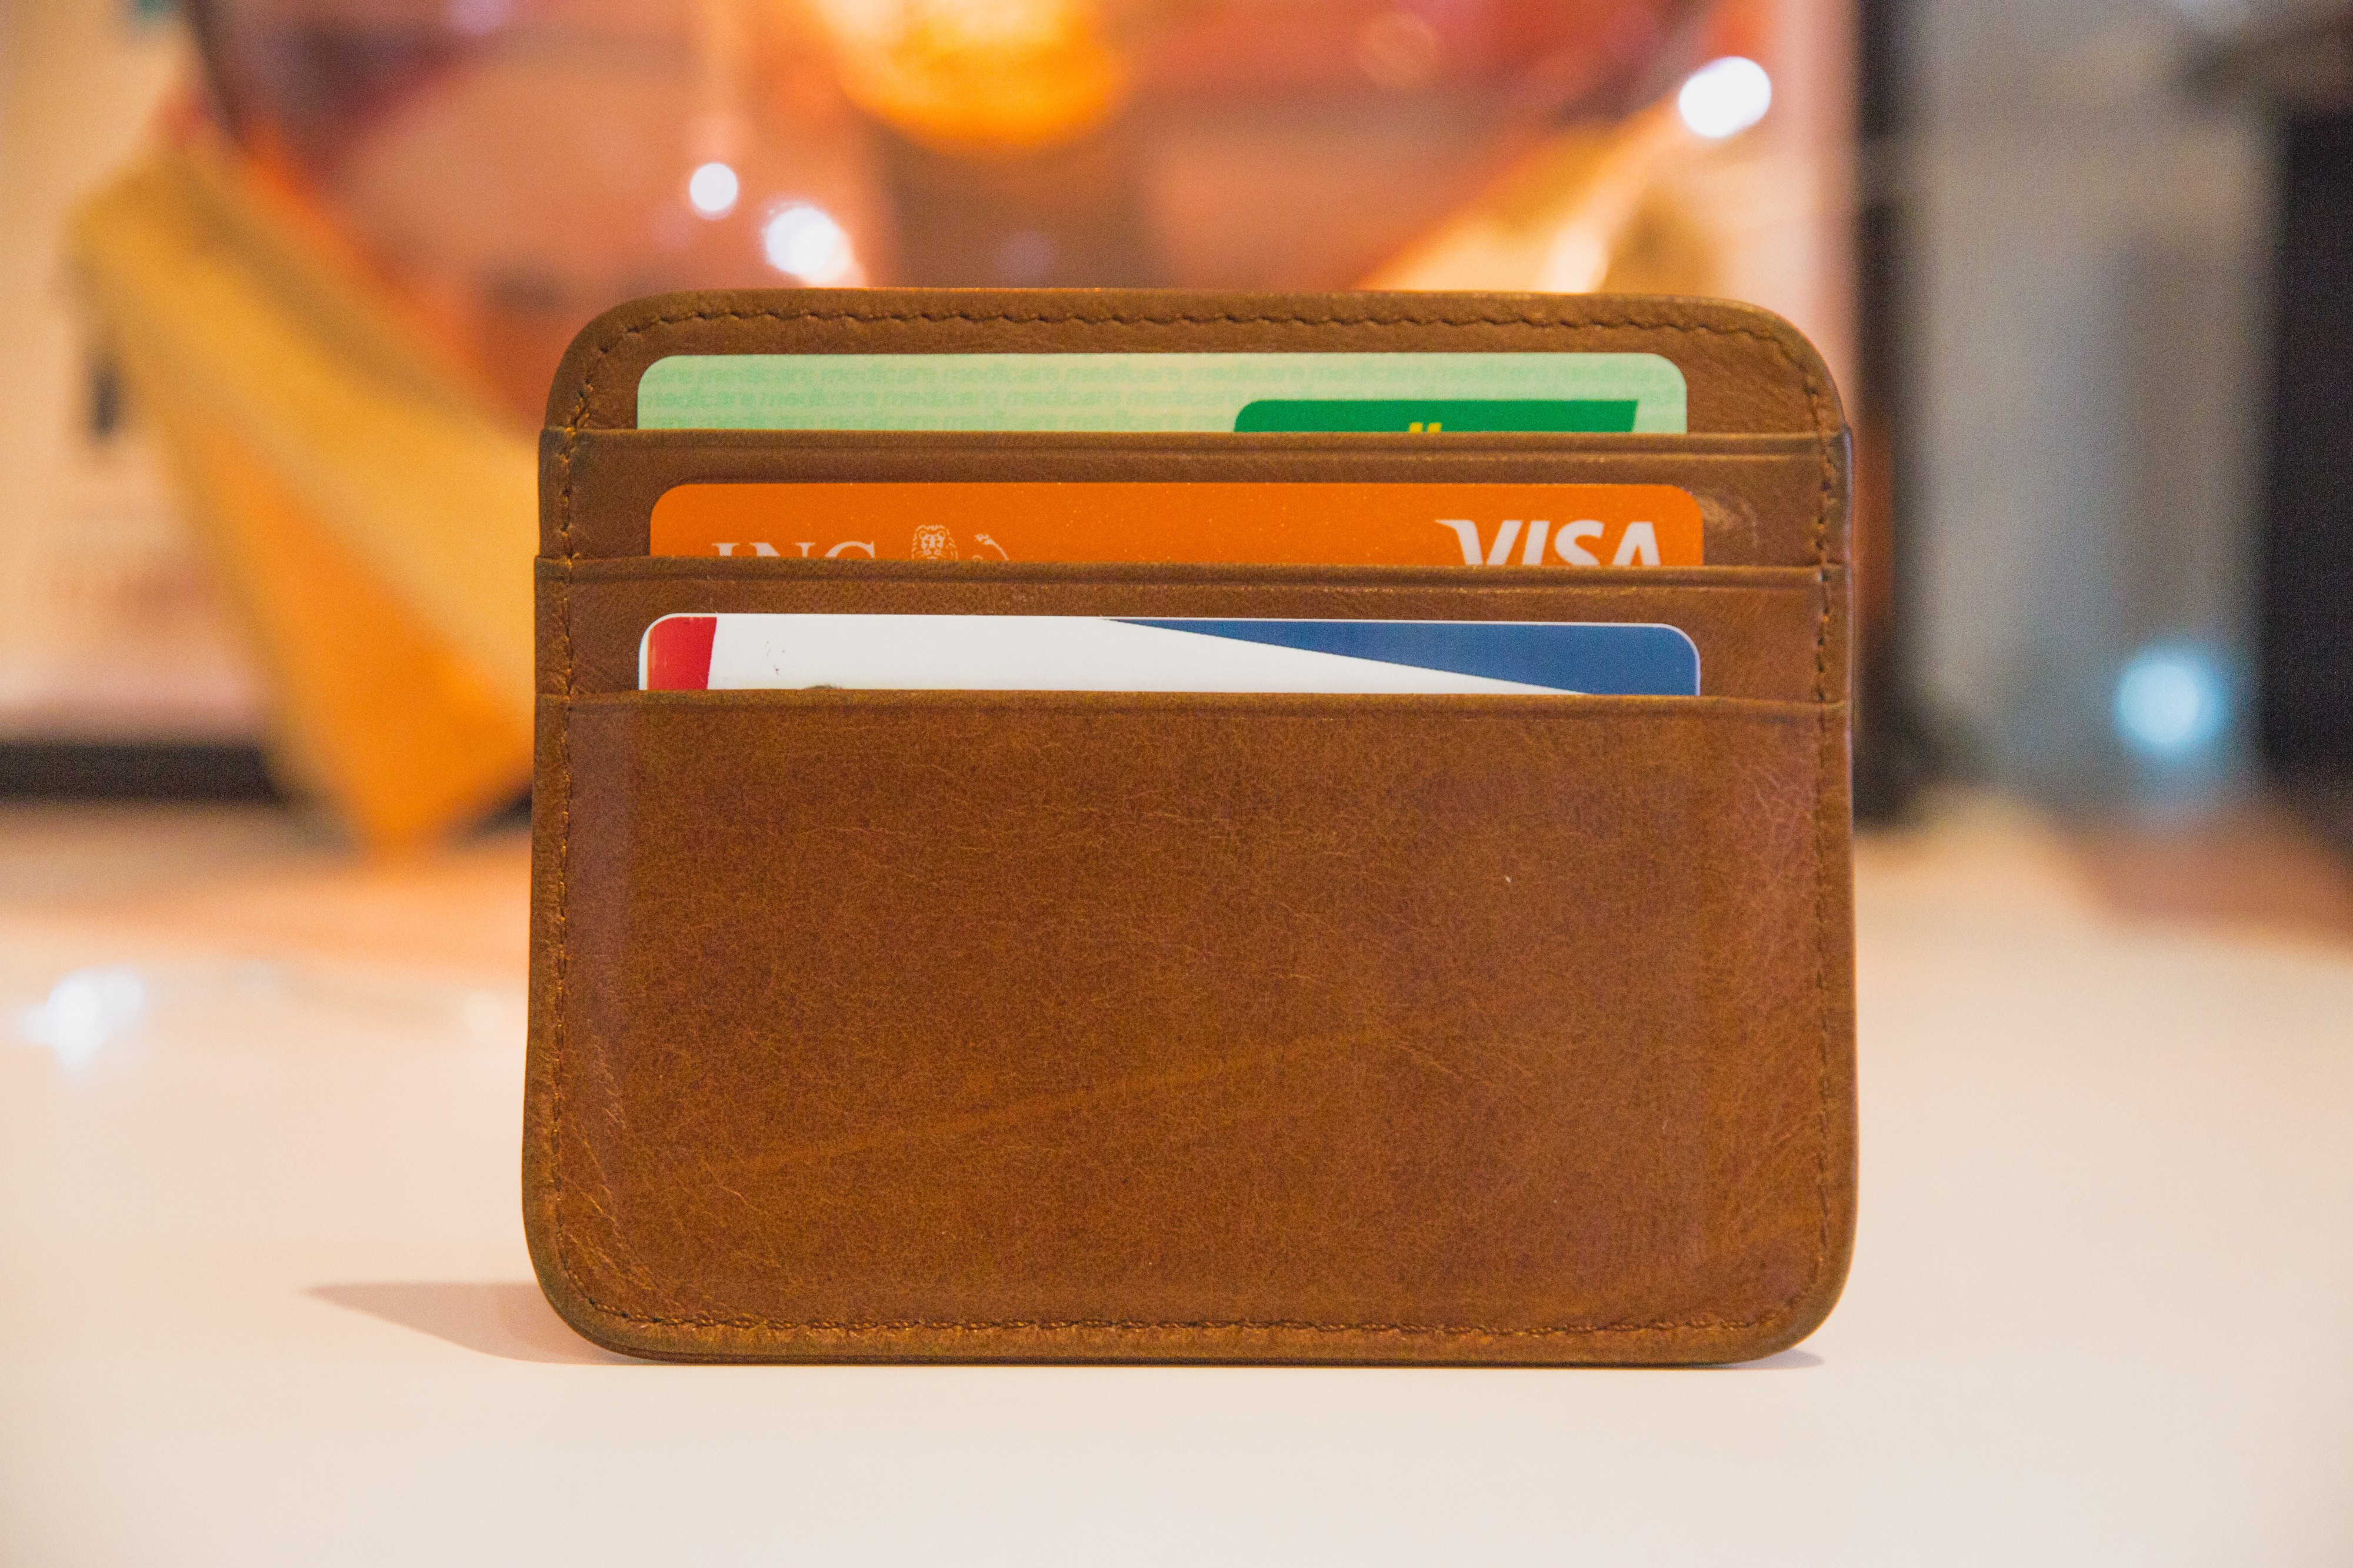 A wallet with cards, possibly credit cards.